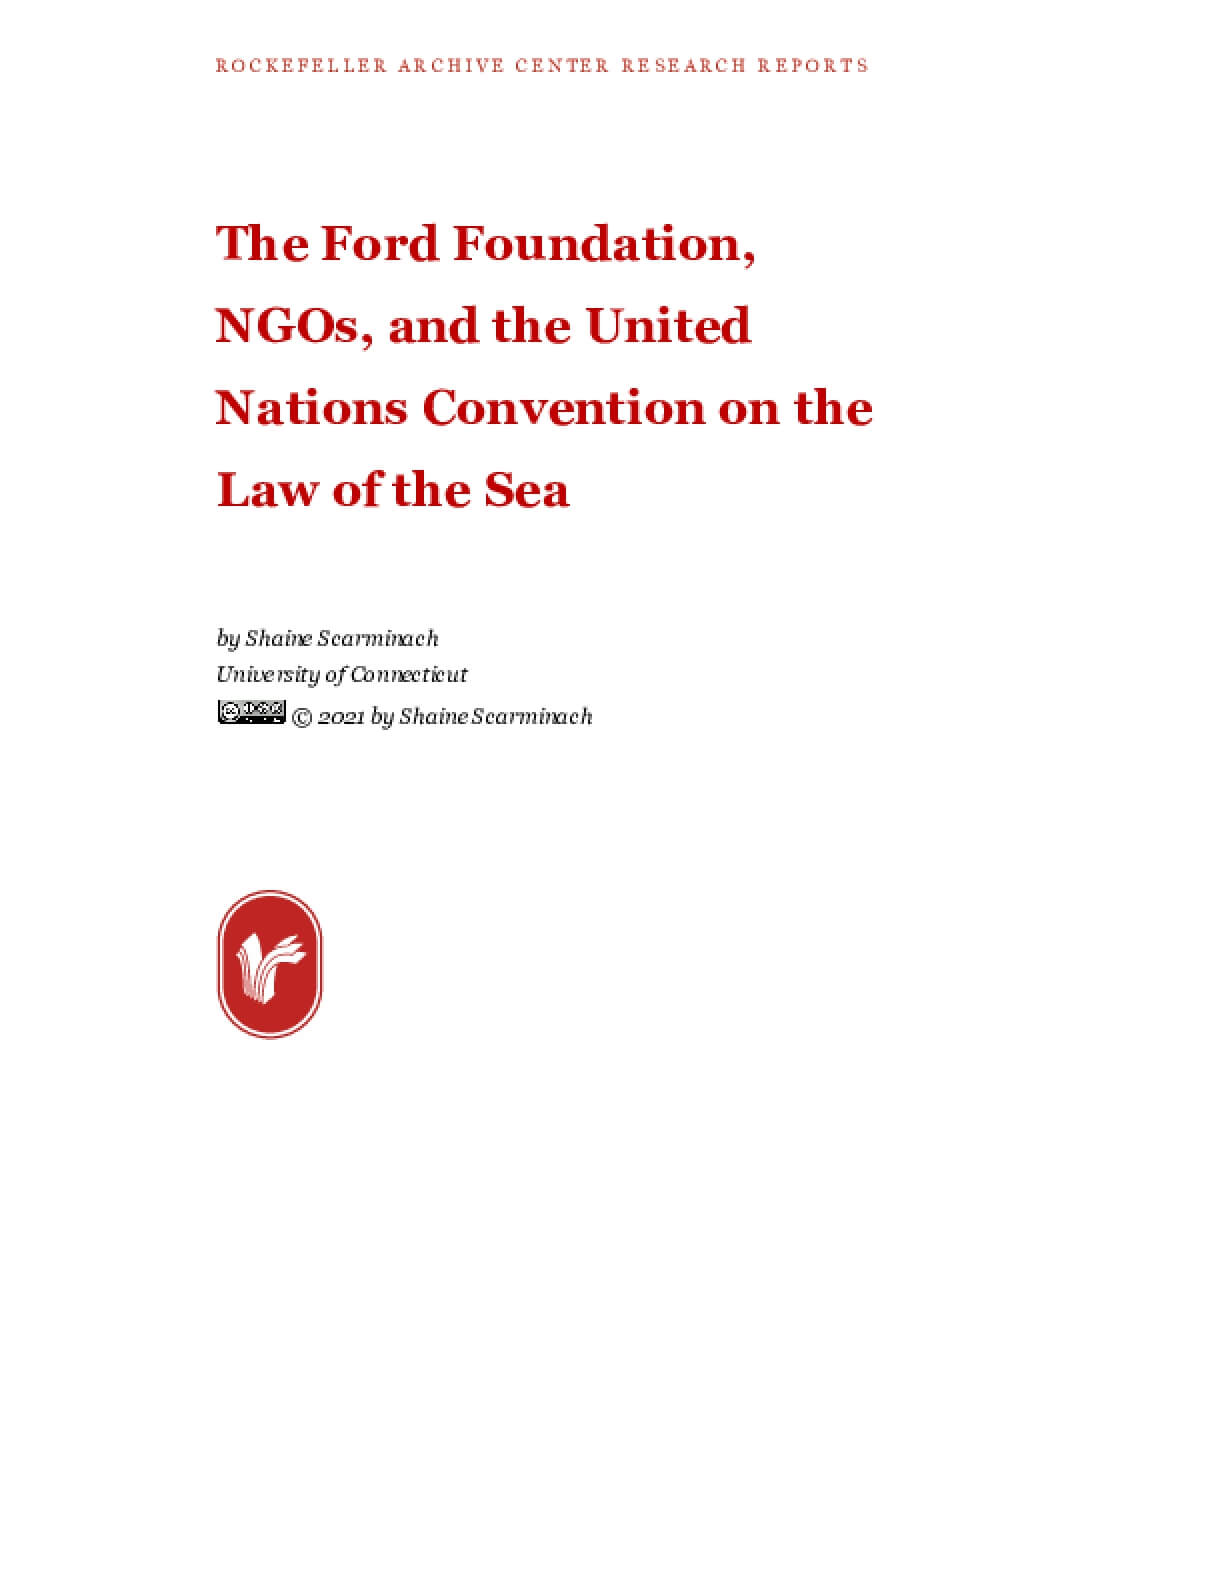 The Ford Foundation, NGOs, and the United Nations Convention on the Law of the Sea